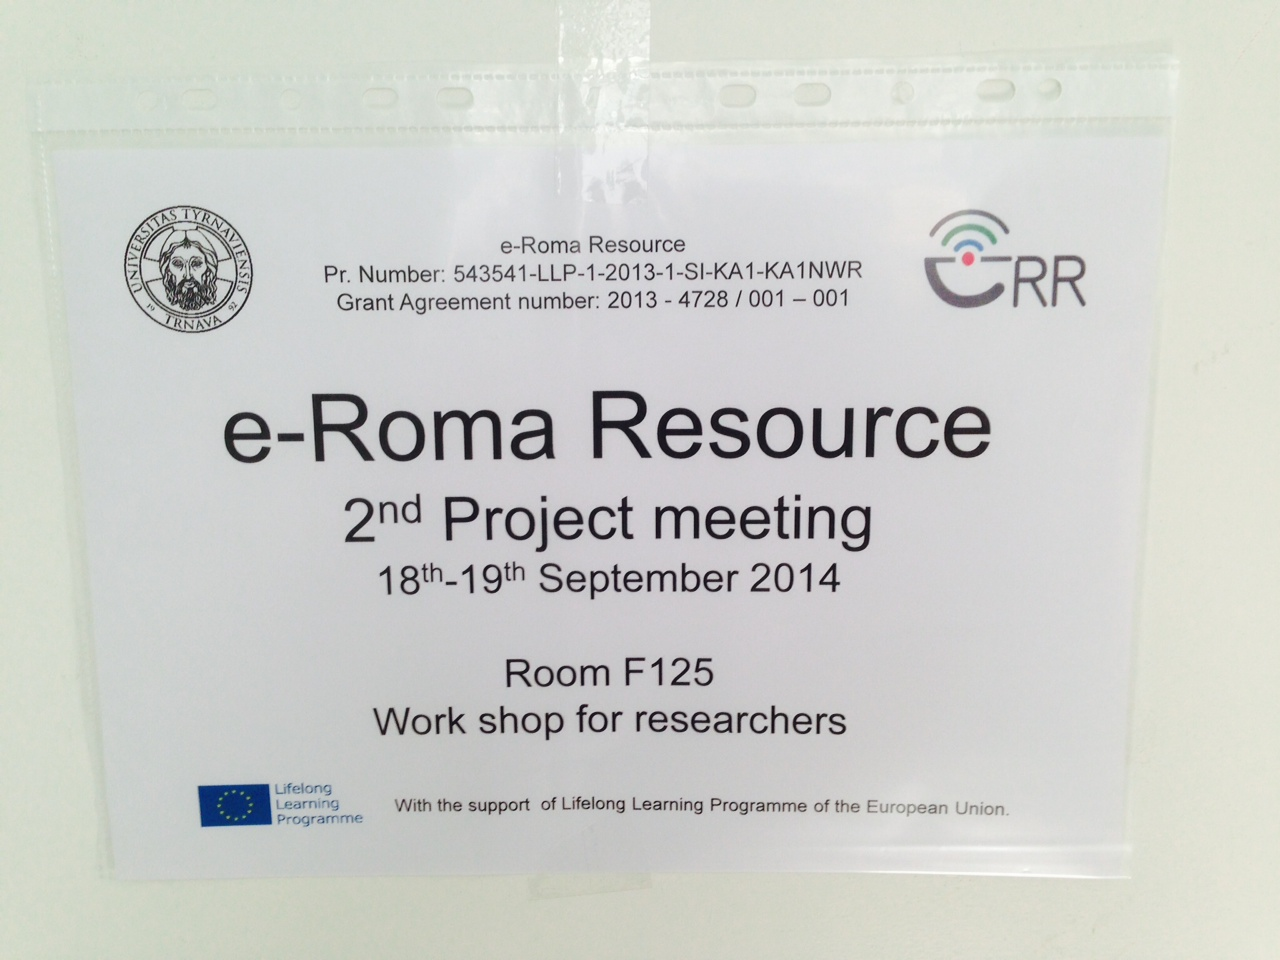 room-for-researchers